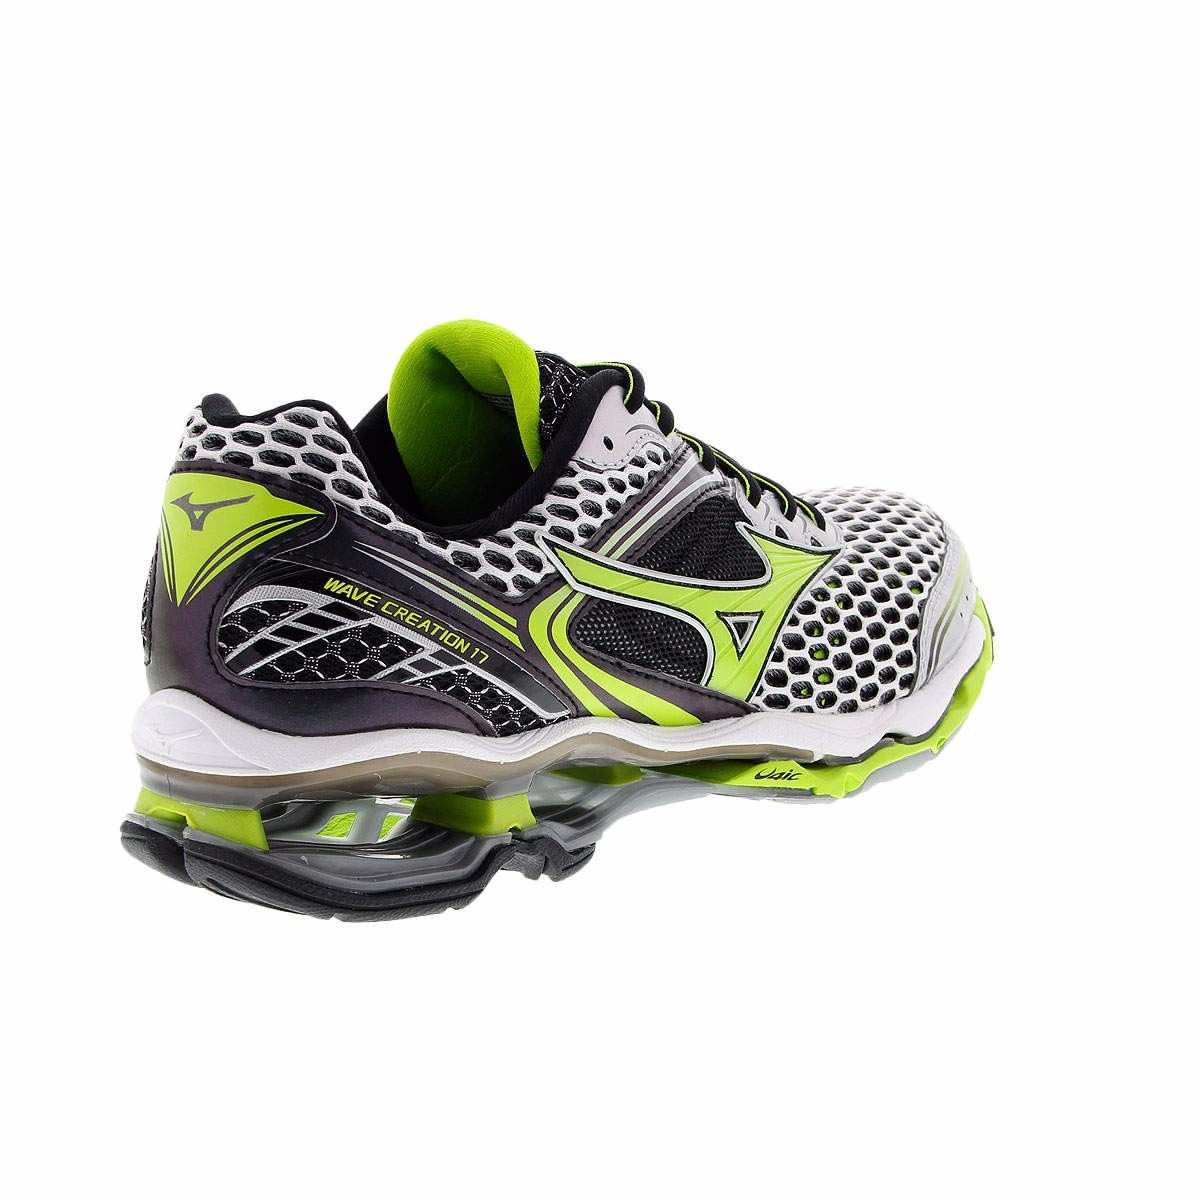 2d0e726a29f tenis mizuno wave creation 17 masculino original com nfe. Carregando zoom.